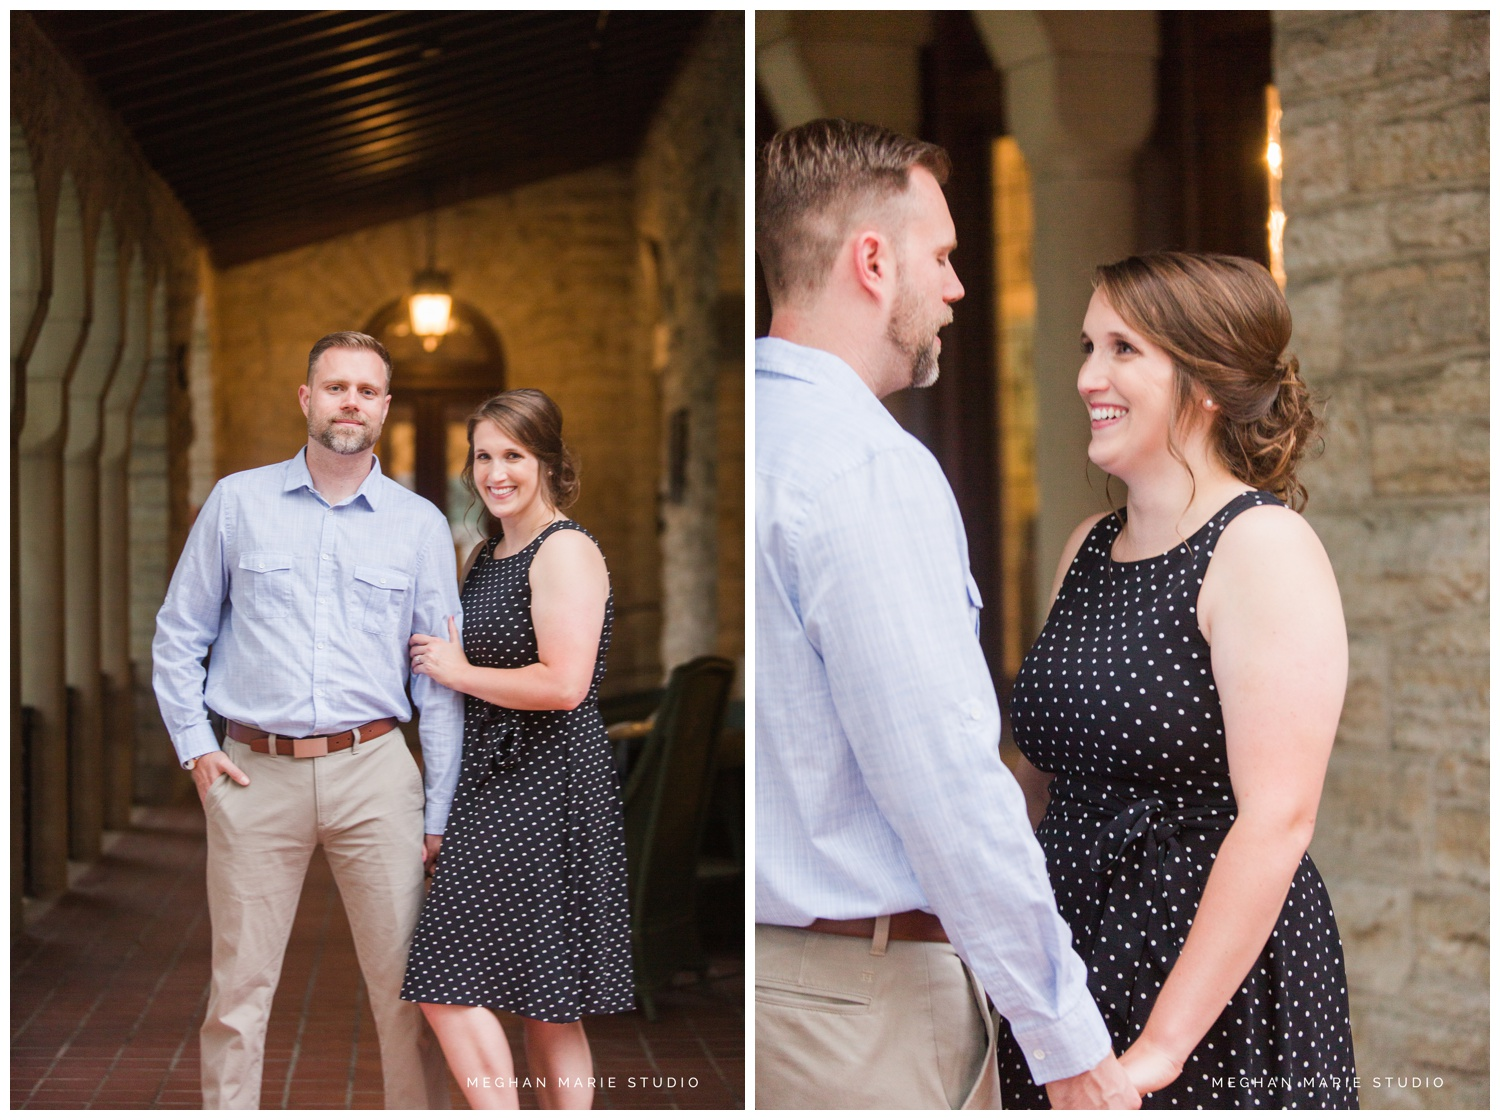 downtown-troy-urban-vintage-engagement-wedding-photography-hayner-cultural-center-meghan-marie-studio_0162.jpg